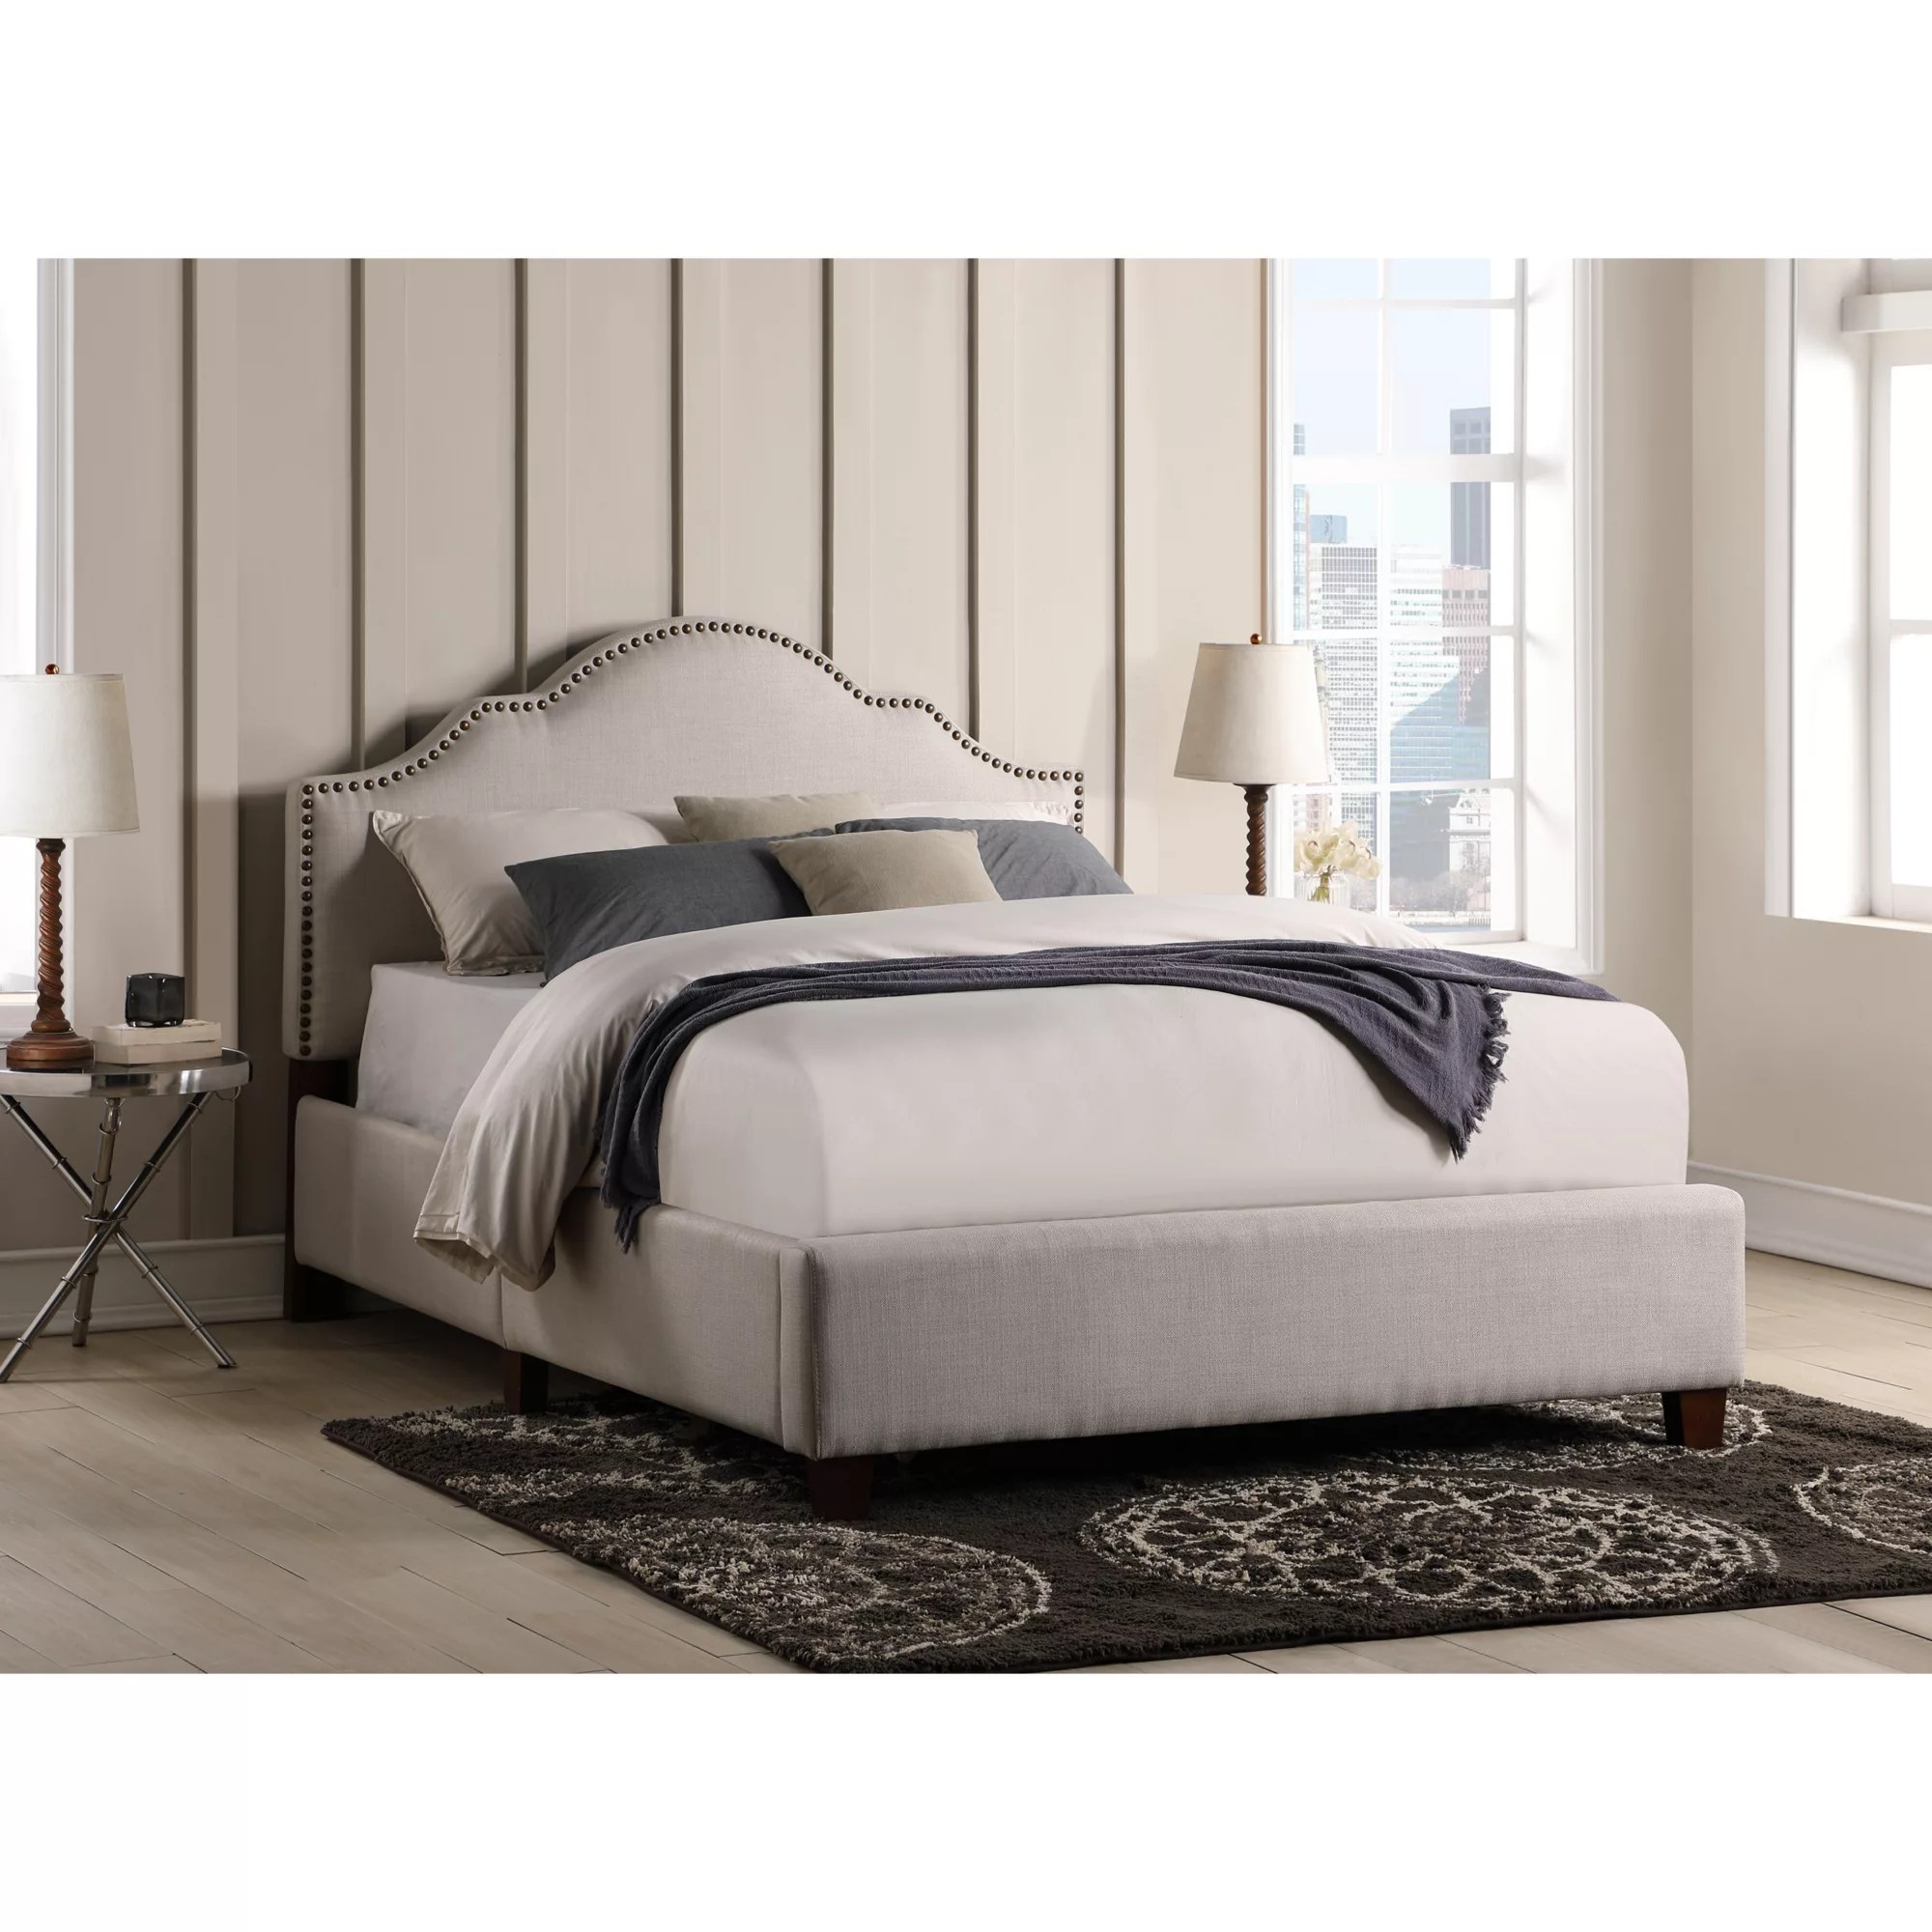 Northridge Home Queen Upholstered Bed In A Box Bjs Wholesale Club